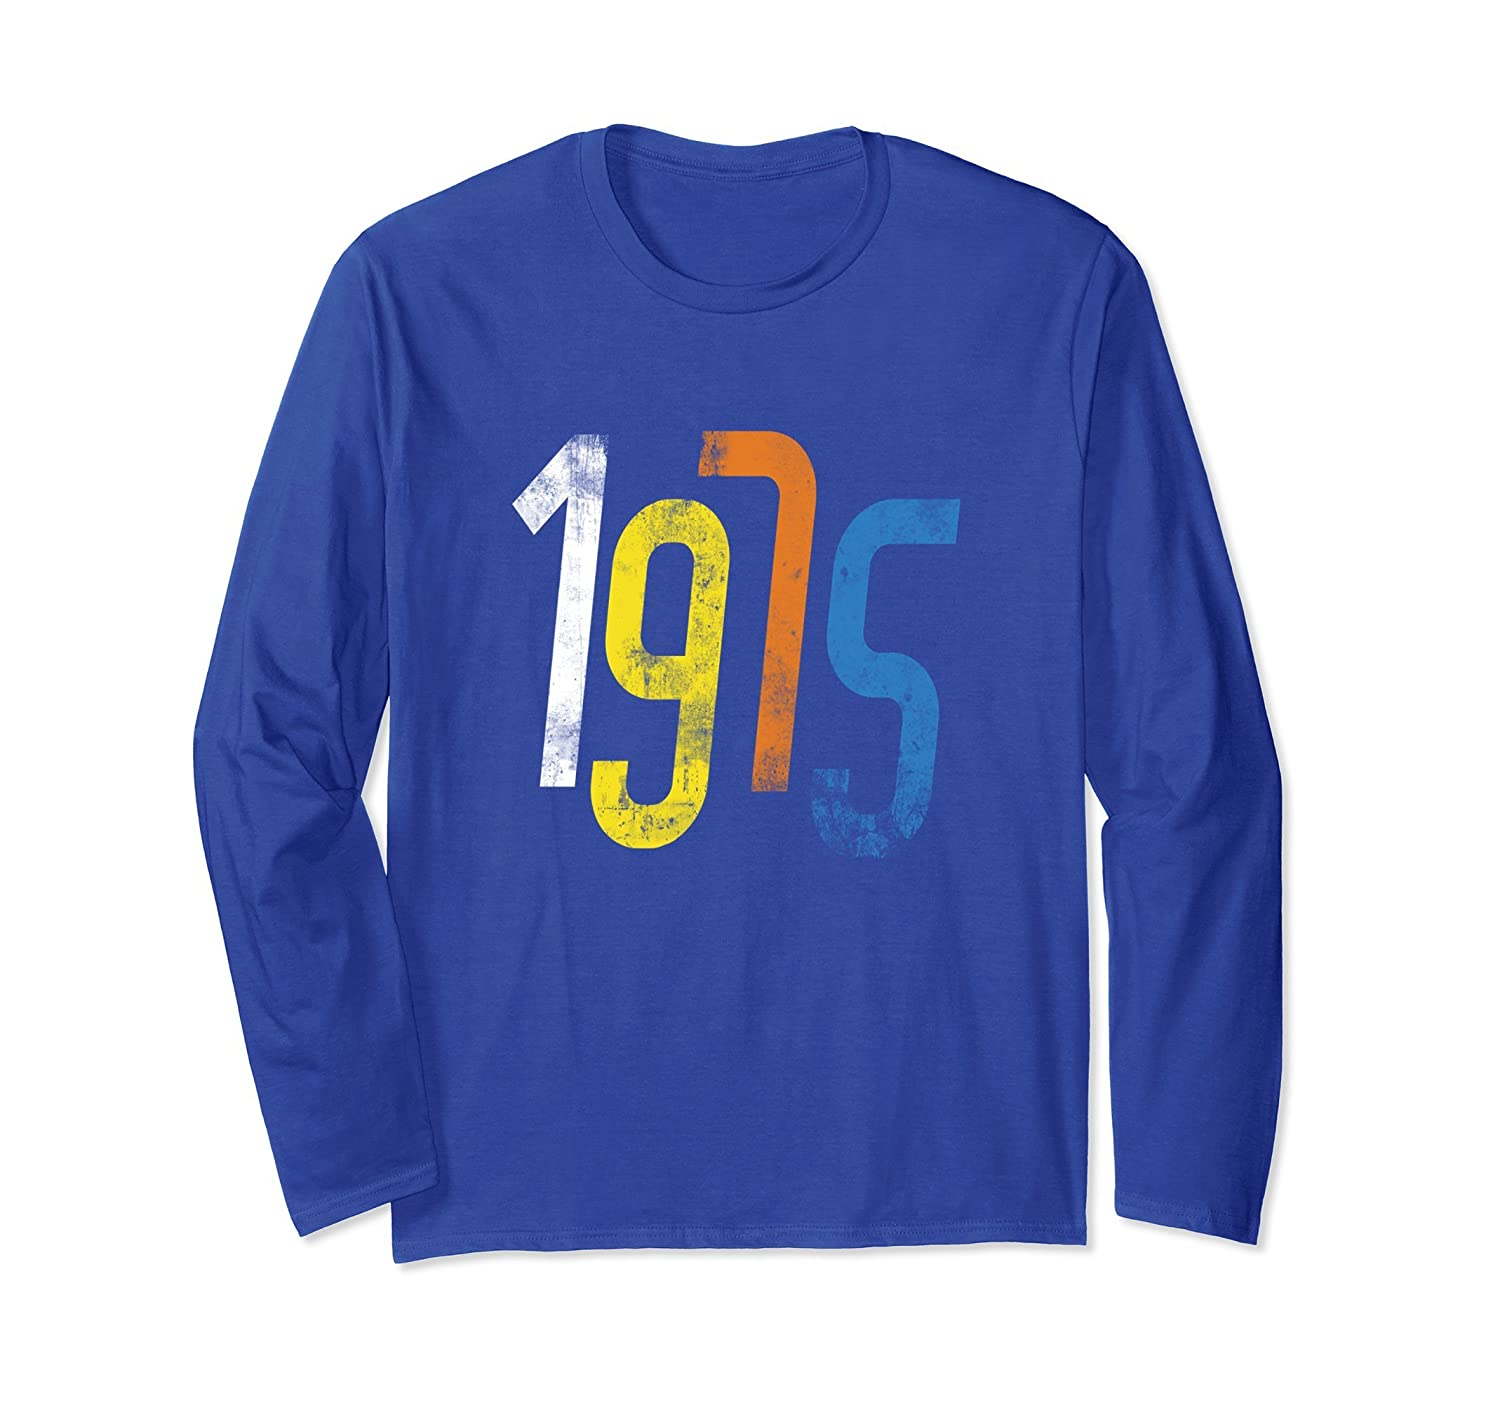 Born in 1975 Apparel - 43th Birthday Long Sleeve Tee 2018-ah my shirt one gift